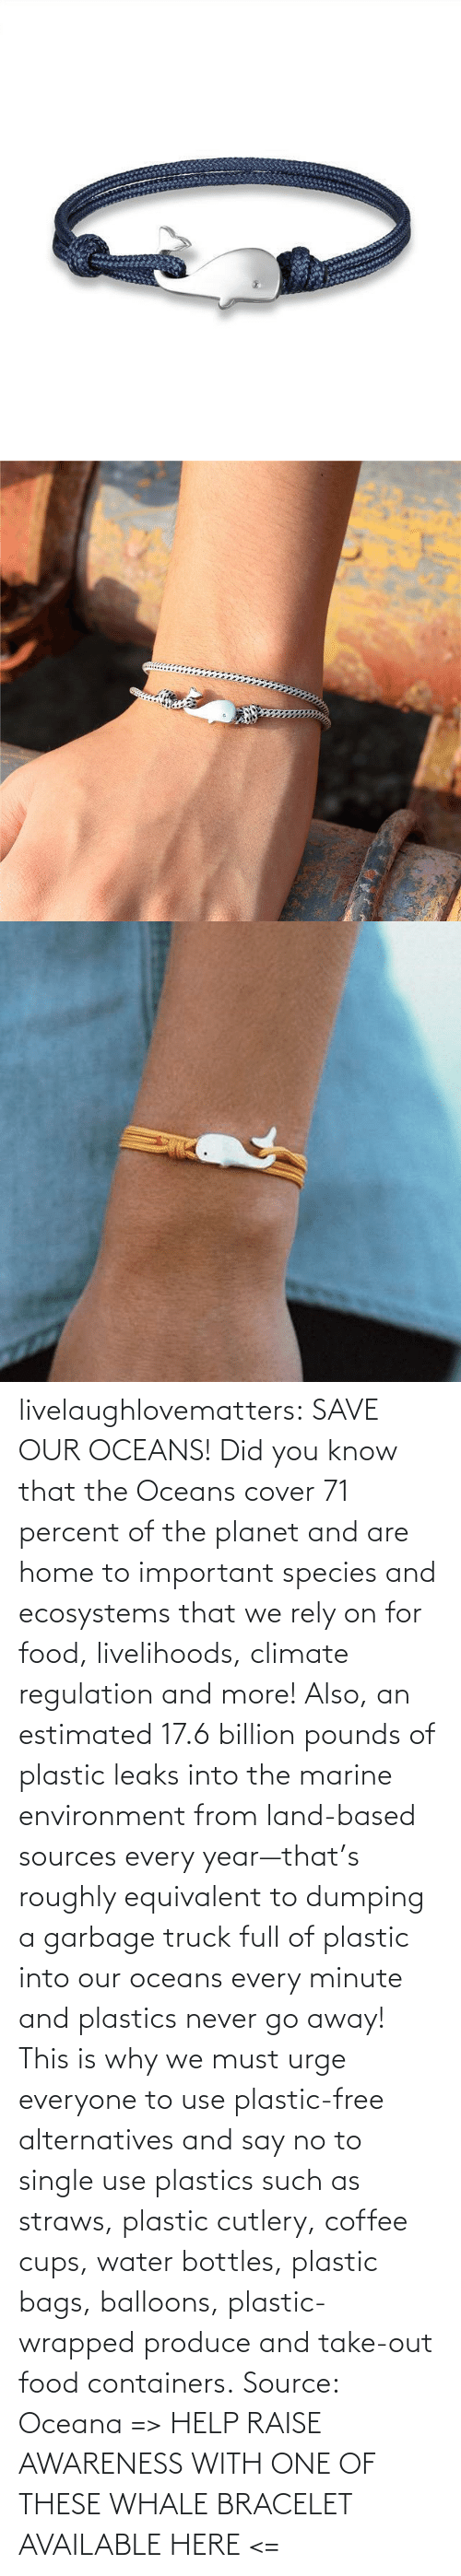 did you know: livelaughlovematters:  SAVE OUR OCEANS!  Did you know that the Oceans cover 71 percent of the planet and are home to important species and ecosystems that we rely on for food, livelihoods, climate regulation and more! Also, an estimated 17.6 billion pounds of plastic leaks into the marine environment from land-based sources every year—that's roughly equivalent to dumping a garbage truck full of plastic into our oceans every minute and plastics never go away! This is why we must urge everyone to use plastic-free alternatives and say no to single use plastics such as straws, plastic cutlery, coffee cups, water bottles, plastic bags, balloons, plastic-wrapped produce and take-out food containers. Source: Oceana => HELP RAISE AWARENESS WITH ONE OF THESE WHALE BRACELET AVAILABLE HERE <=